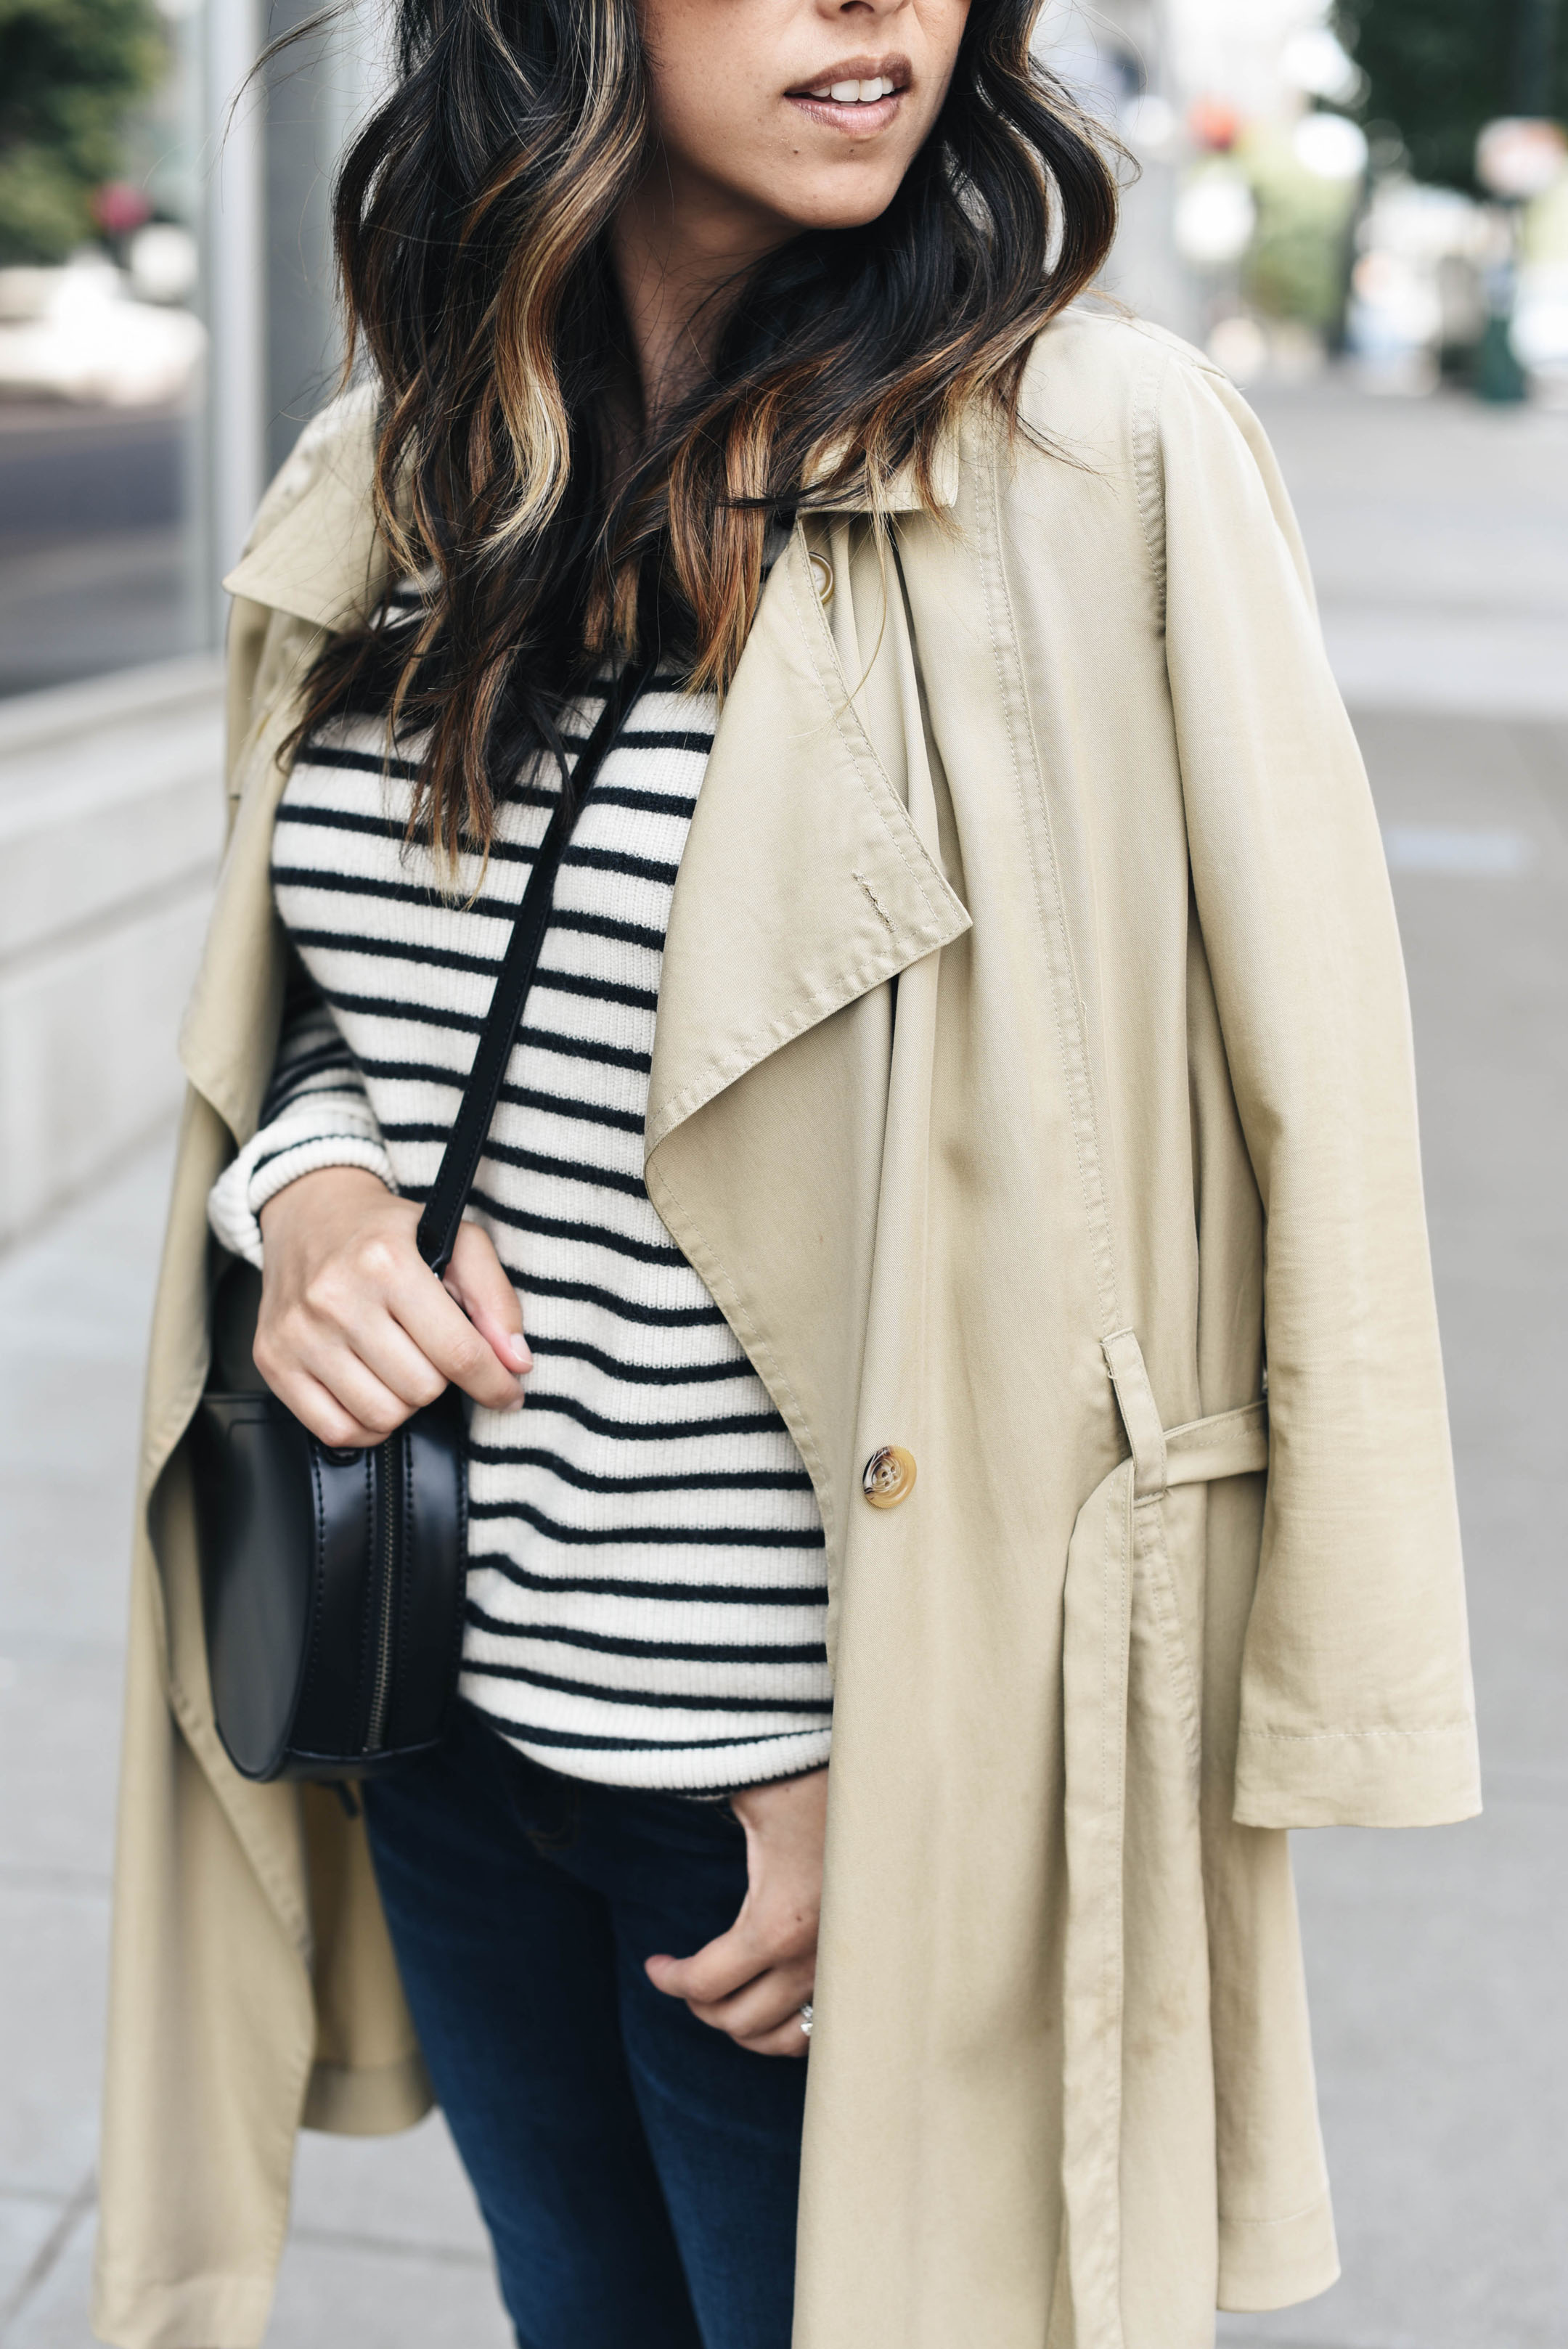 Summer to fall transitional outfits